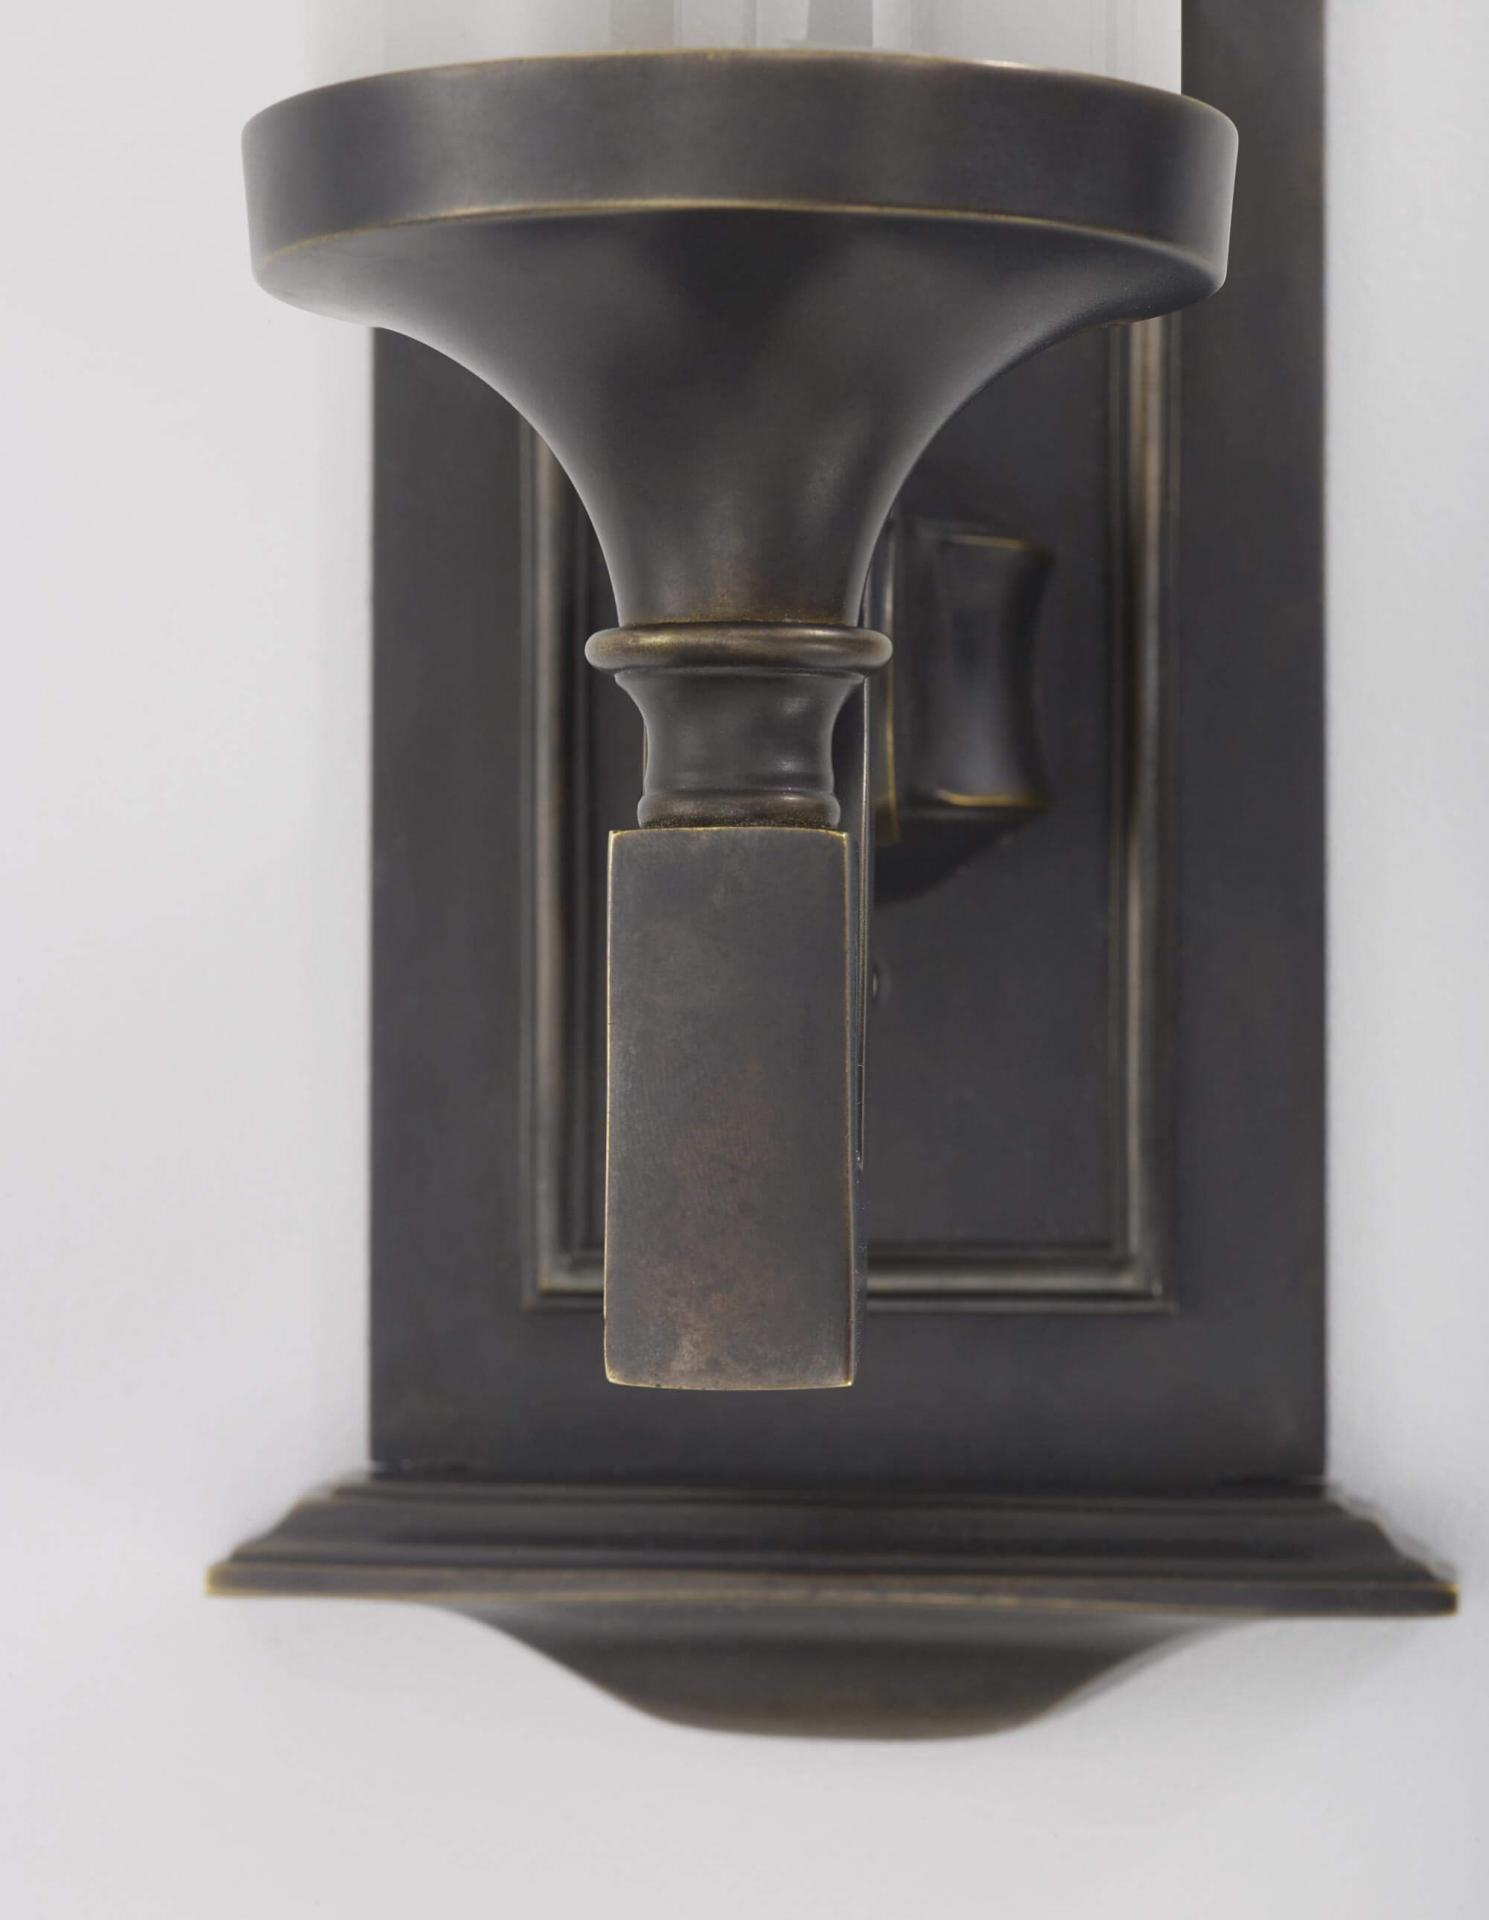 Art Deco style wall sconce